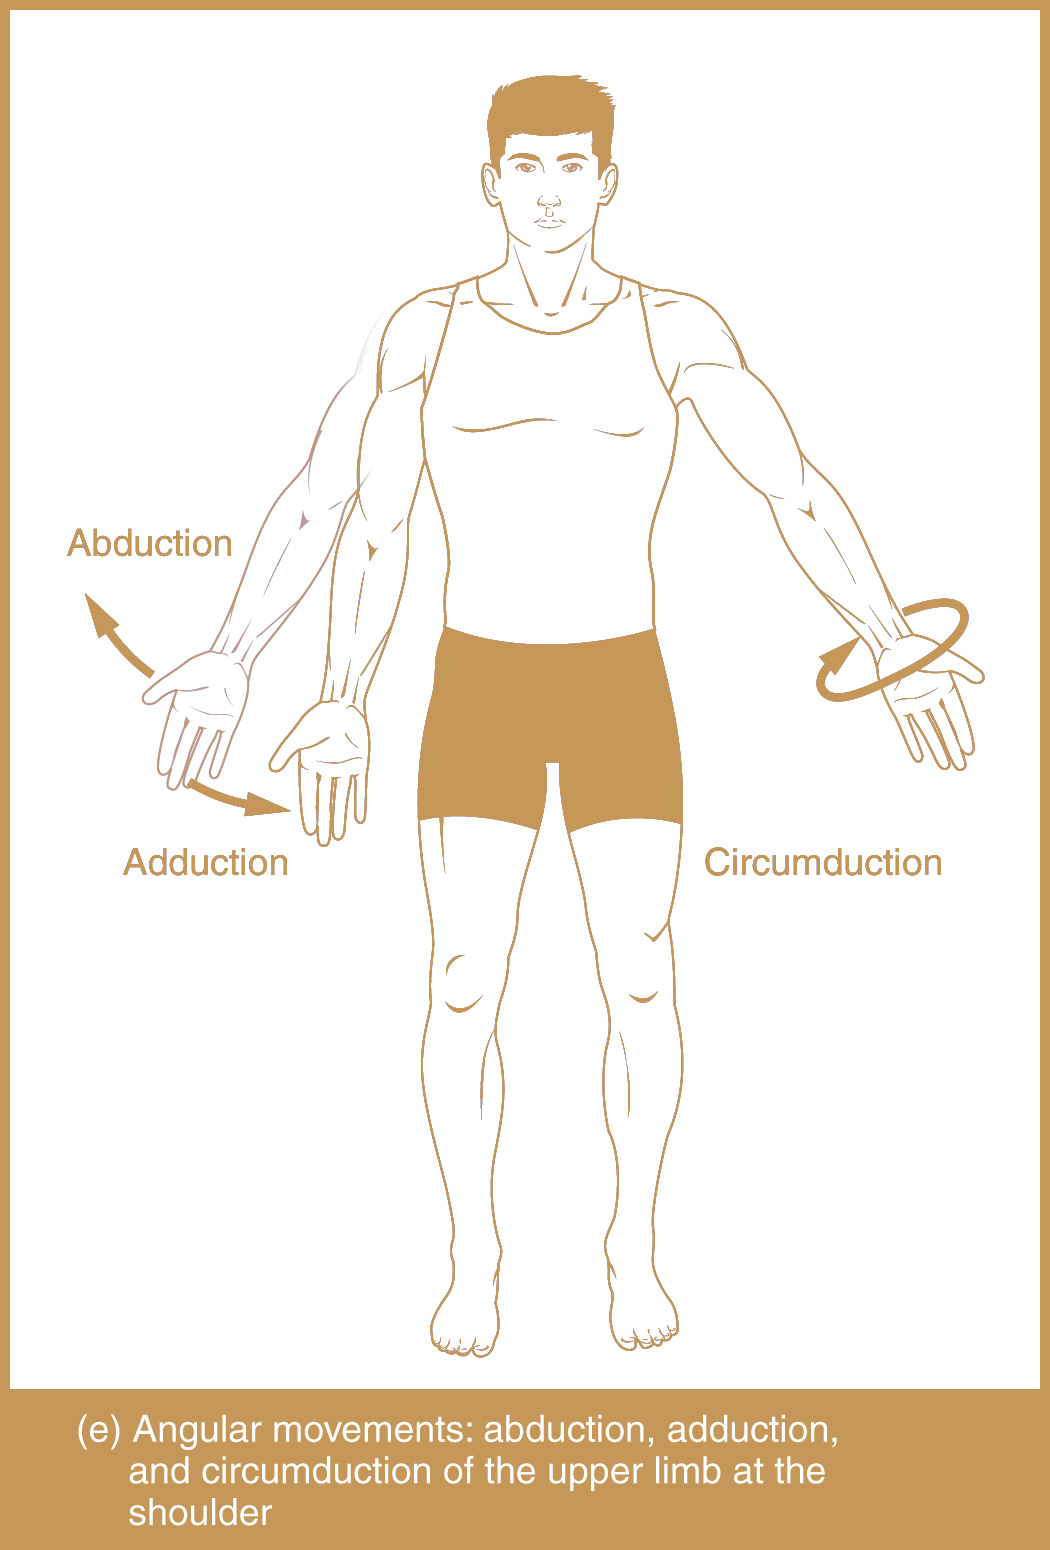 Types of Body Movement - Abduction, Adduction, Circumduction